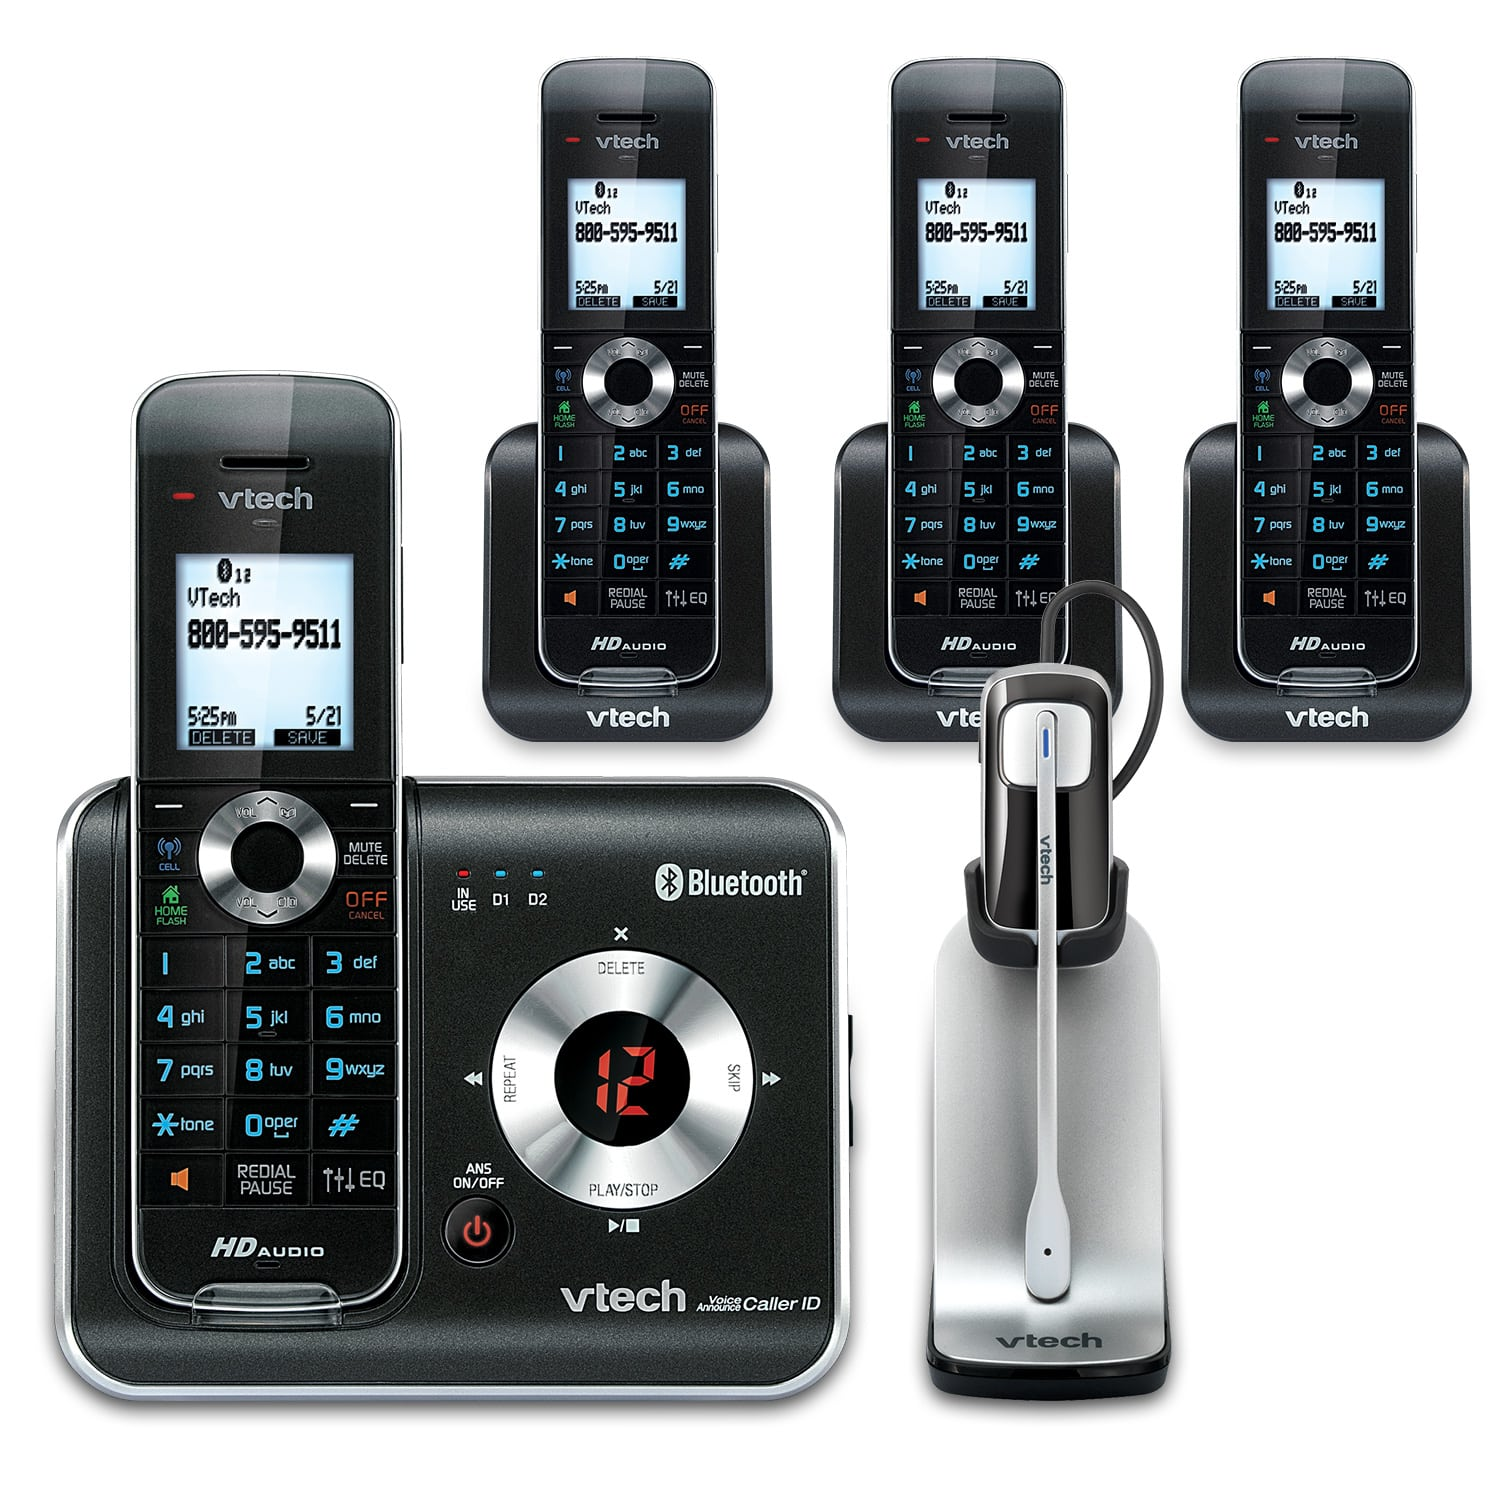 4 Handset Connect To Cell Phone System With Cordless Headset Ds6421 3 One Ds6401 One Is6200 Vtech Cordless Phones